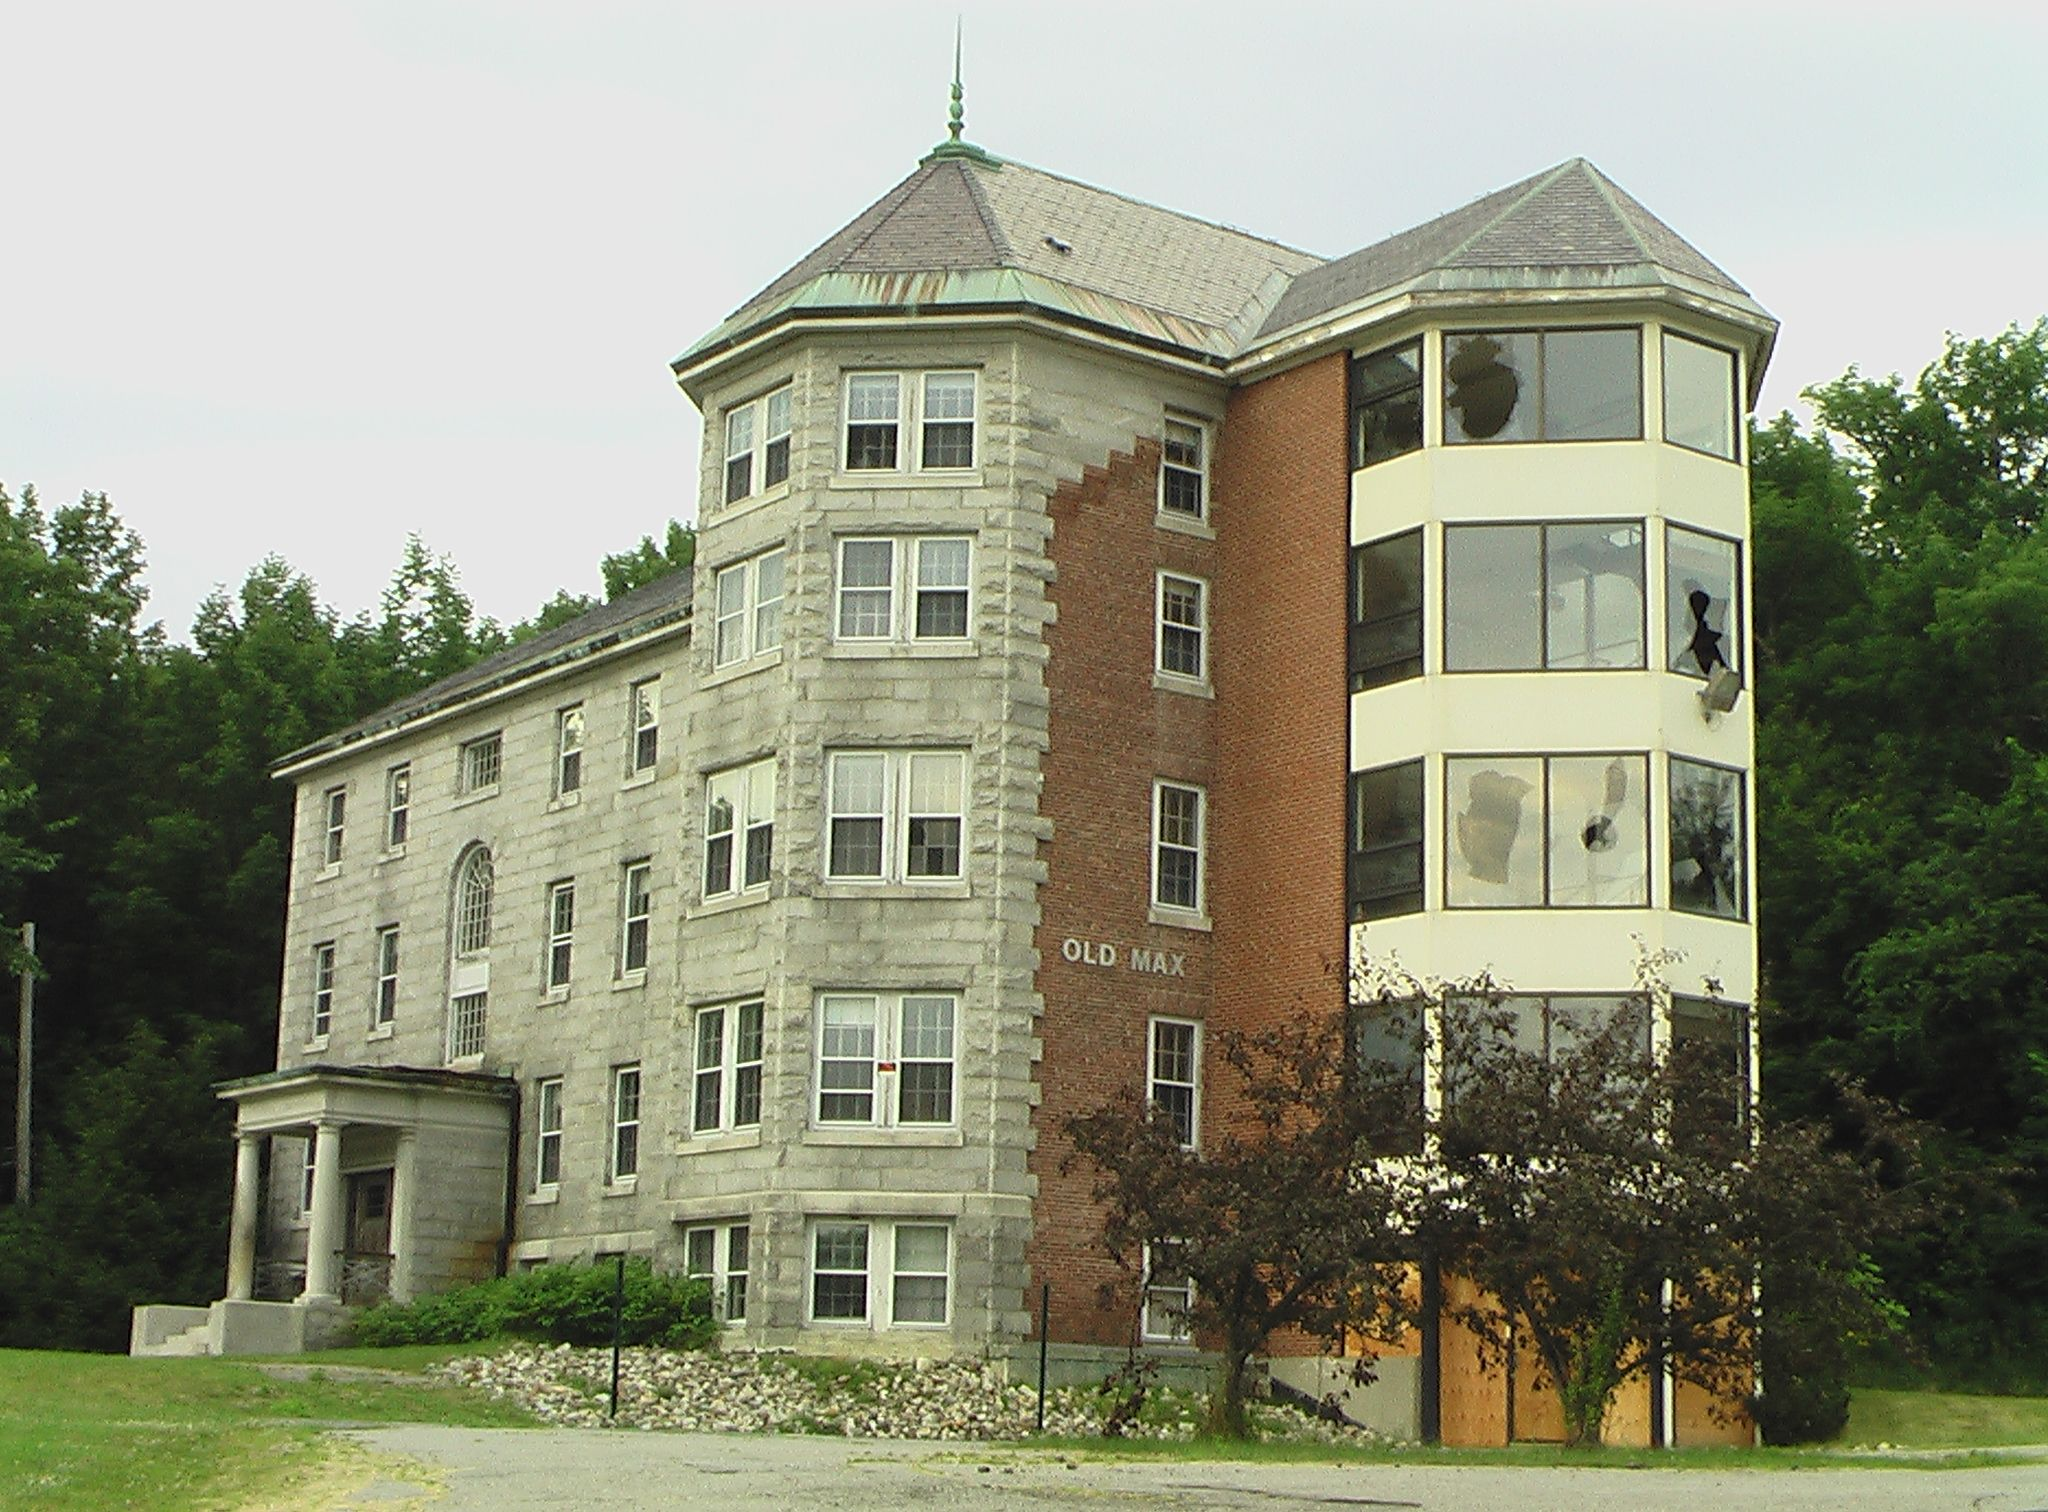 Historic building in augusta maine for sale augusta